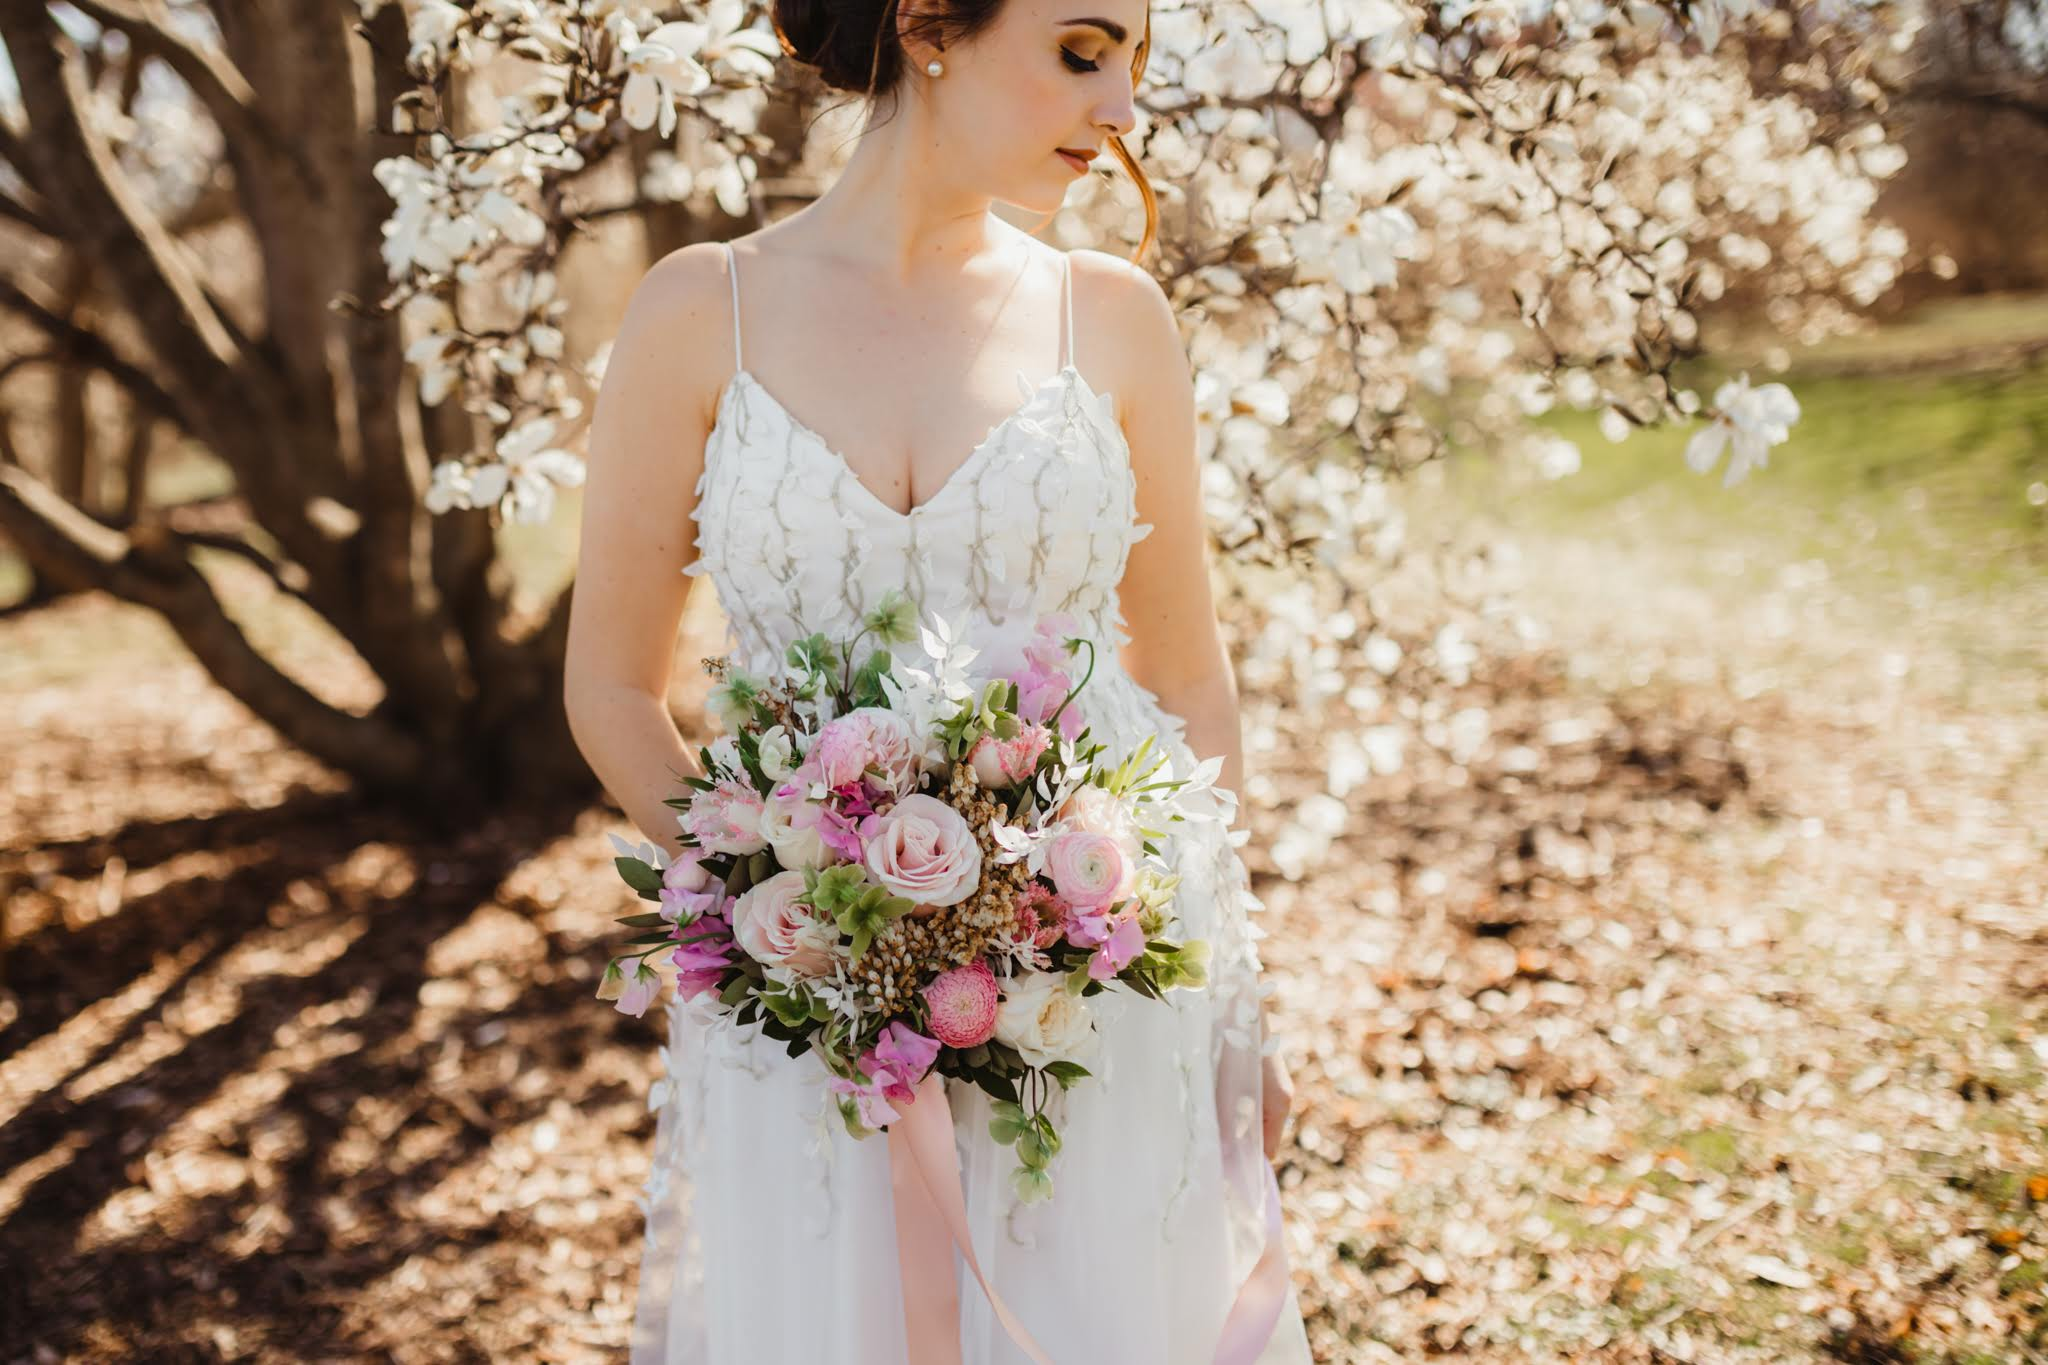 Bride in a Floral Wedding Dress - Spring Wedding at the UW Madison Arboretum in Madison Wisconsin - Phoenix & Rose Photography